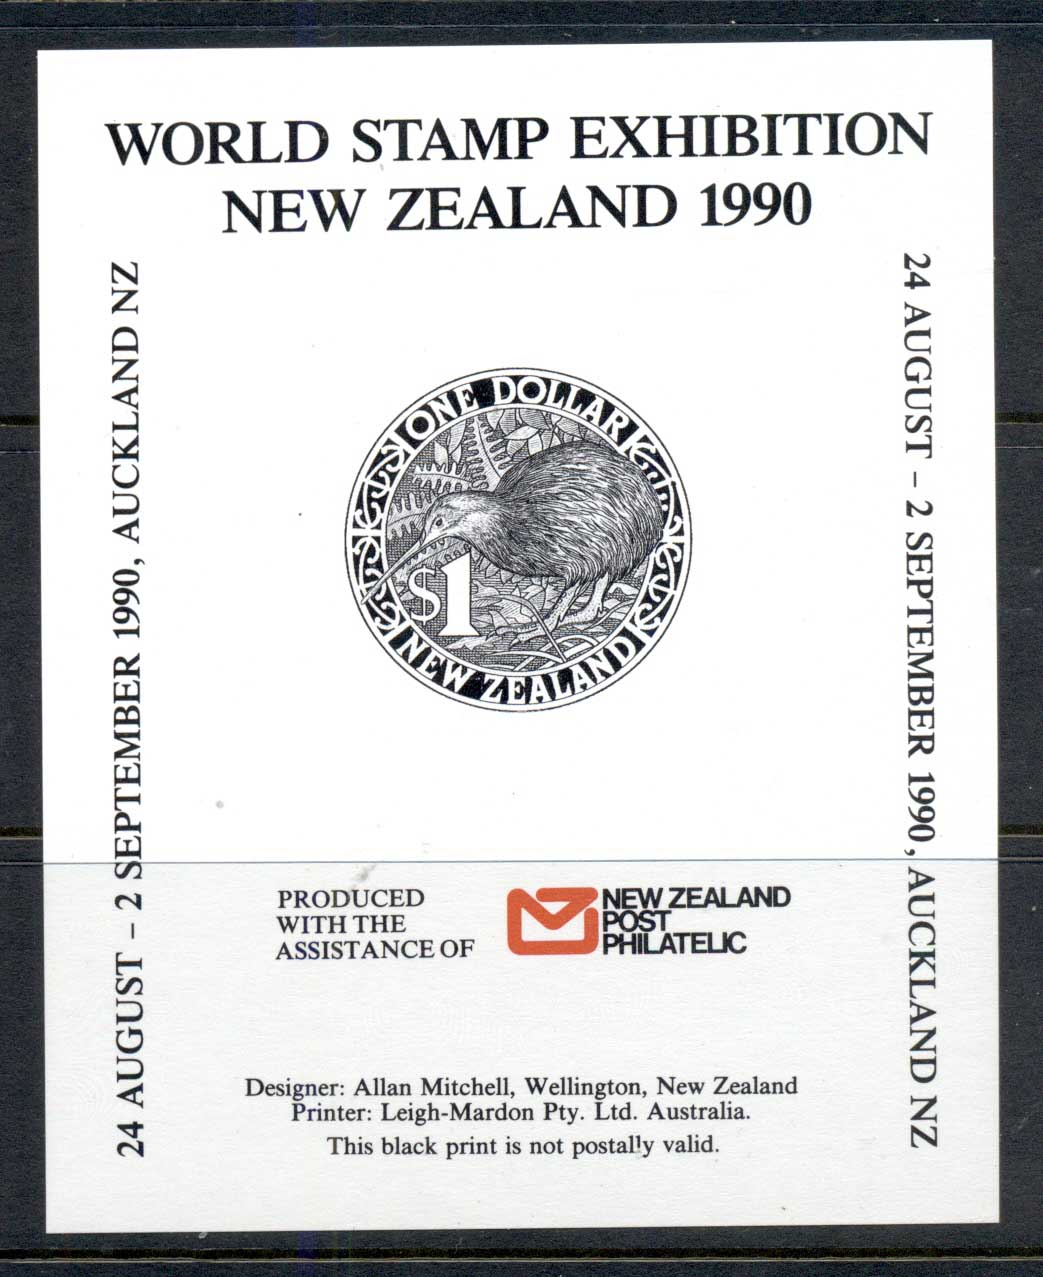 New Zealand 1990 World Stamp Ex Kiwi MS MUH - Click Image to Close